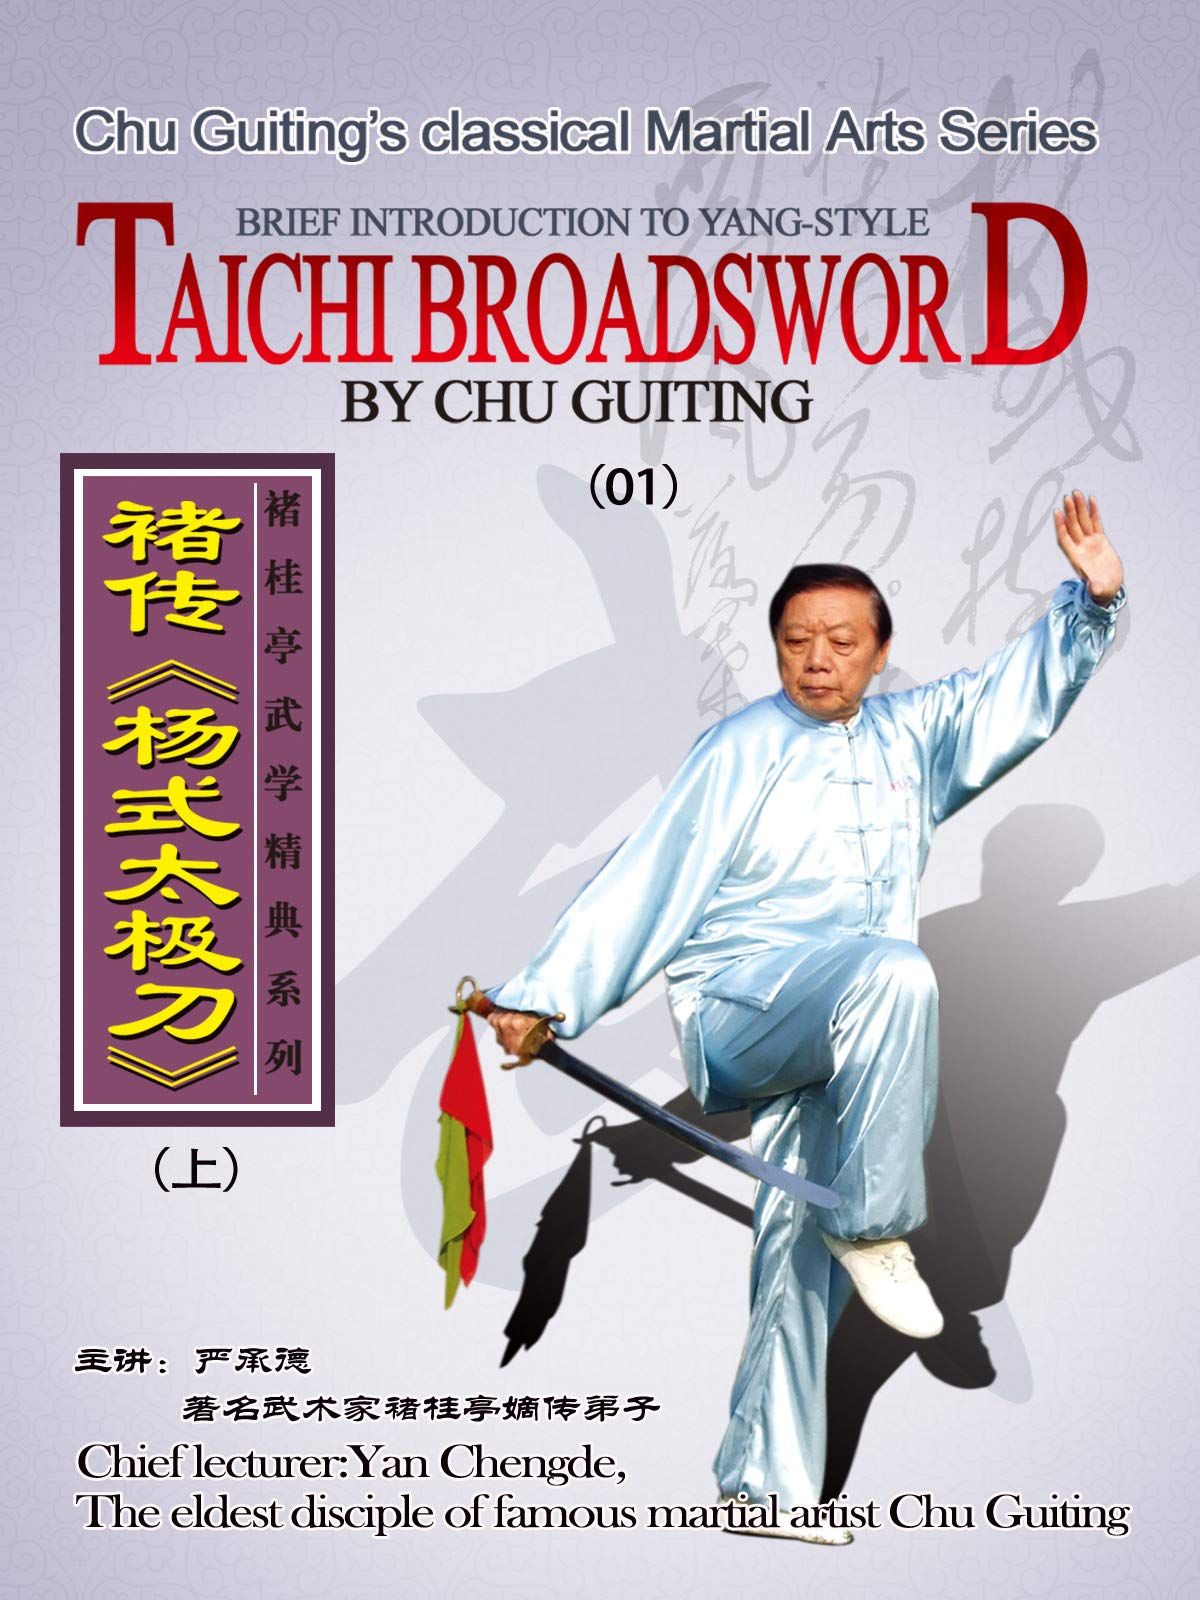 Chu Guiting's classical Martial Arts Series-Brief Introduction to Yang-Taichi Broadsword by Chu Guiting 01